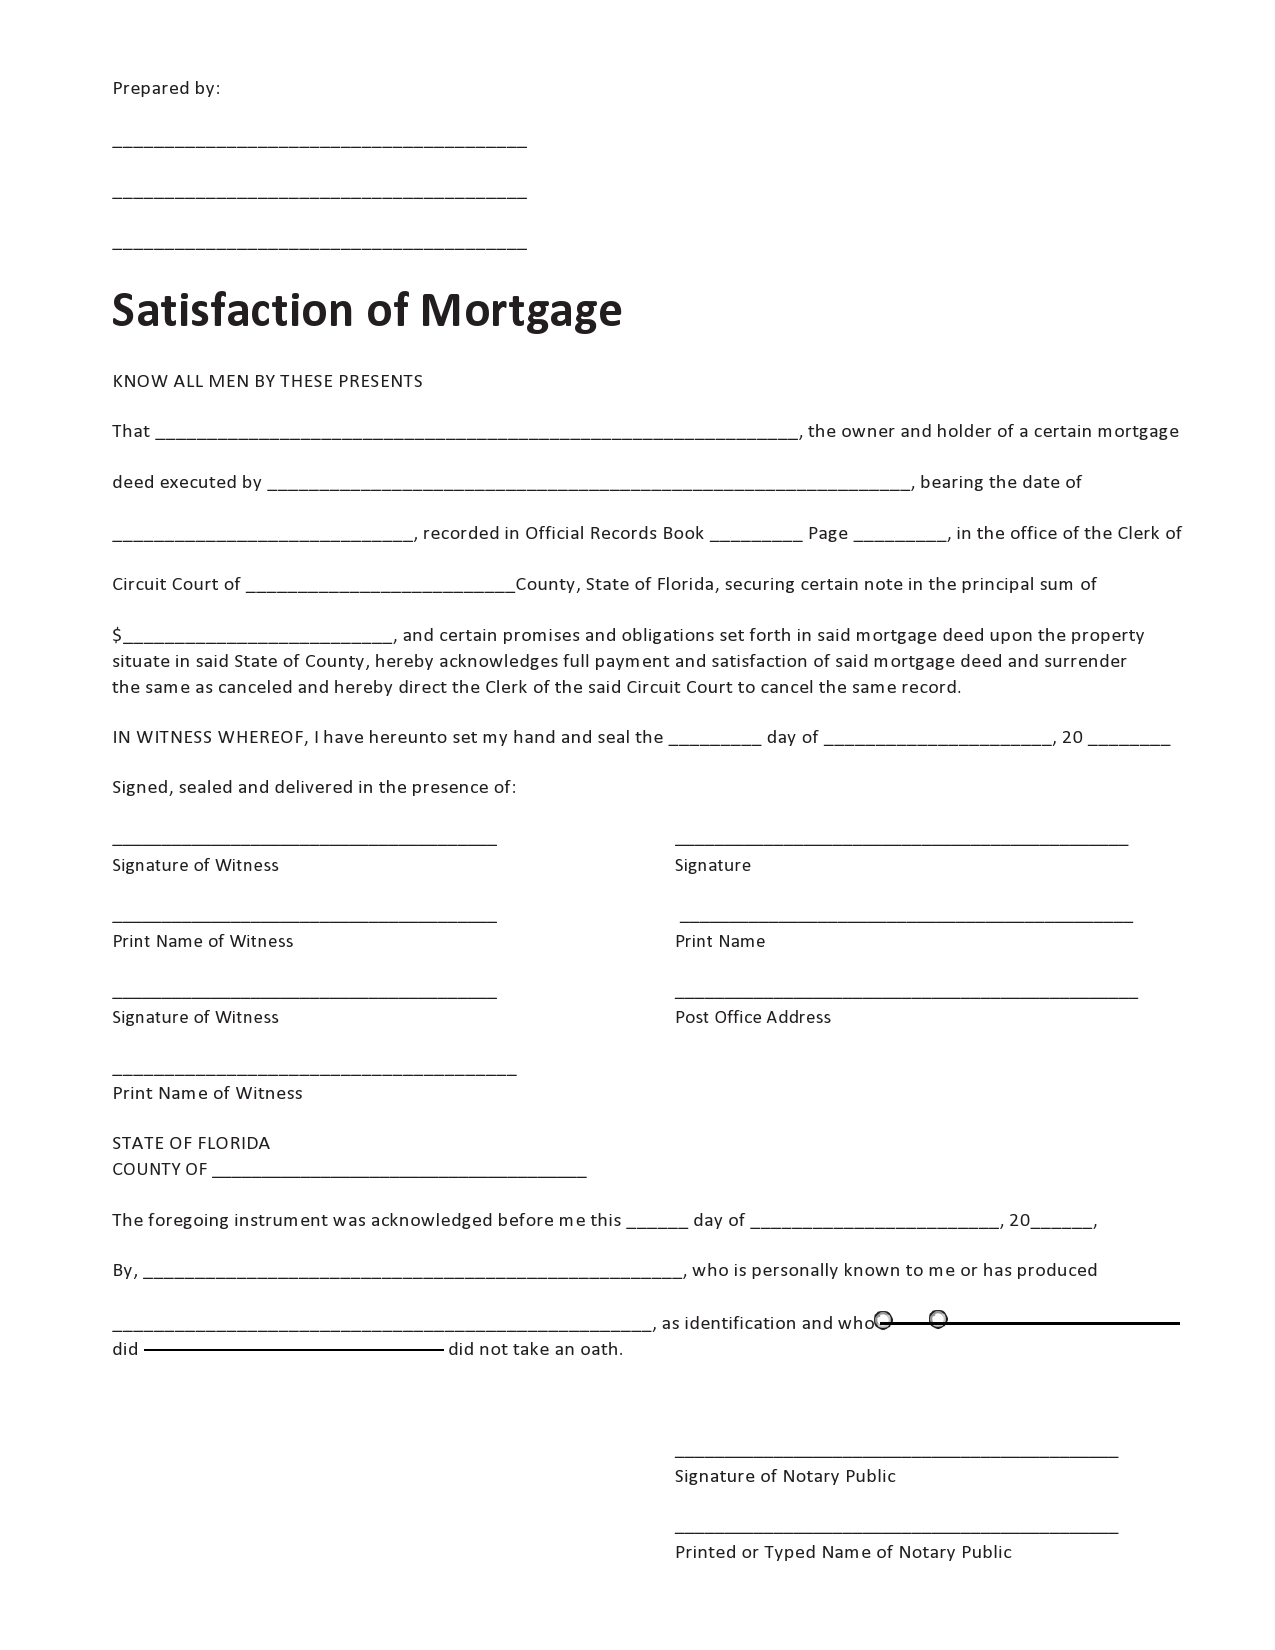 Free satisfaction of mortgage 19